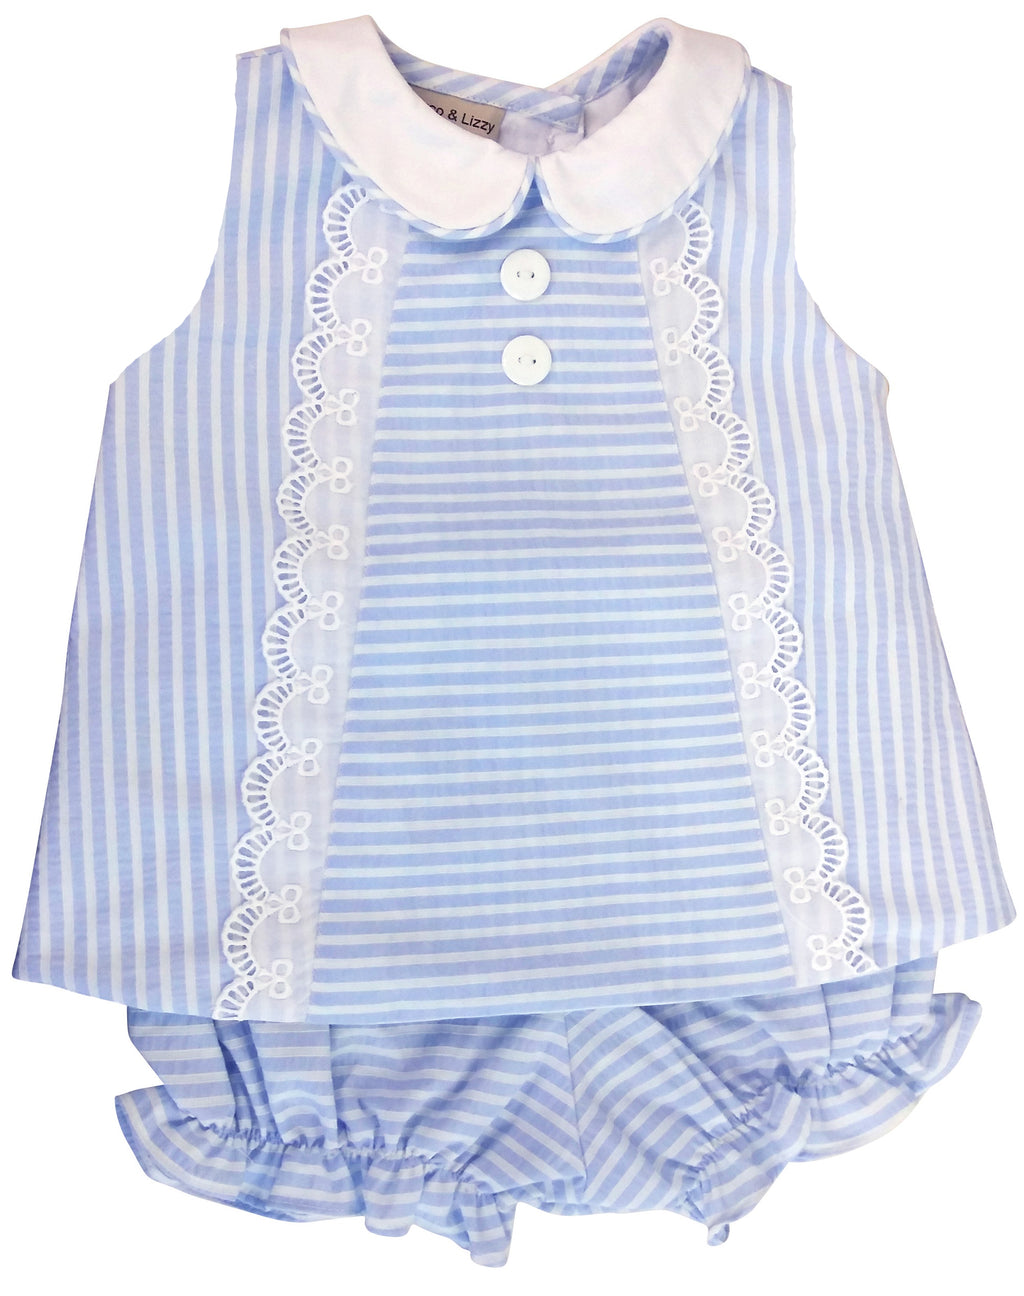 Sophie Lace Baby Dress. - Little Threads Inc. Children's Clothing